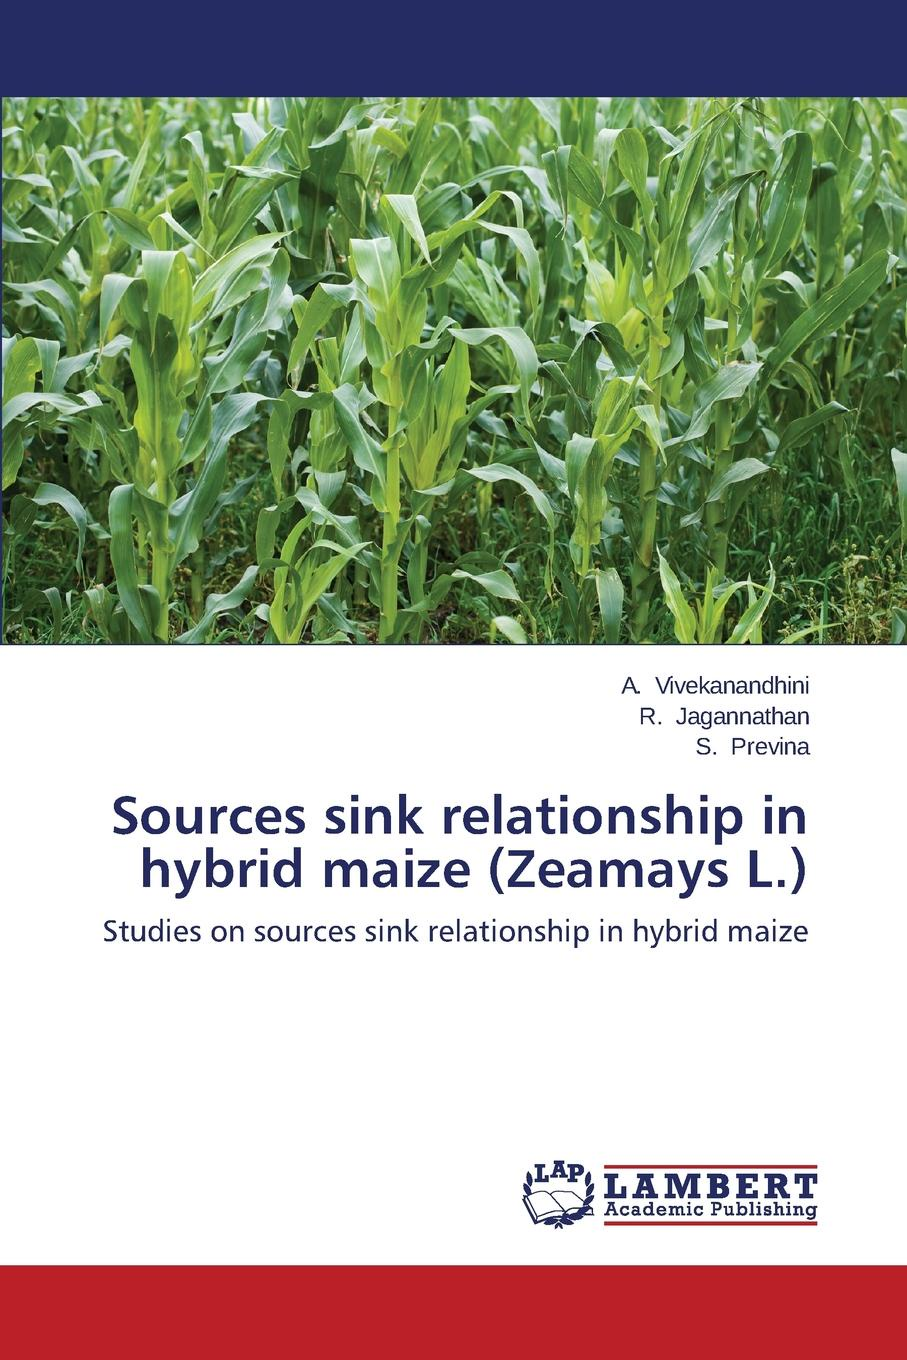 Vivekanandhini A., Jagannathan R., Previna S. Sources sink relationship in hybrid maize (Zeamays L.) bio fertilization for rice and residual effect on sequent crop